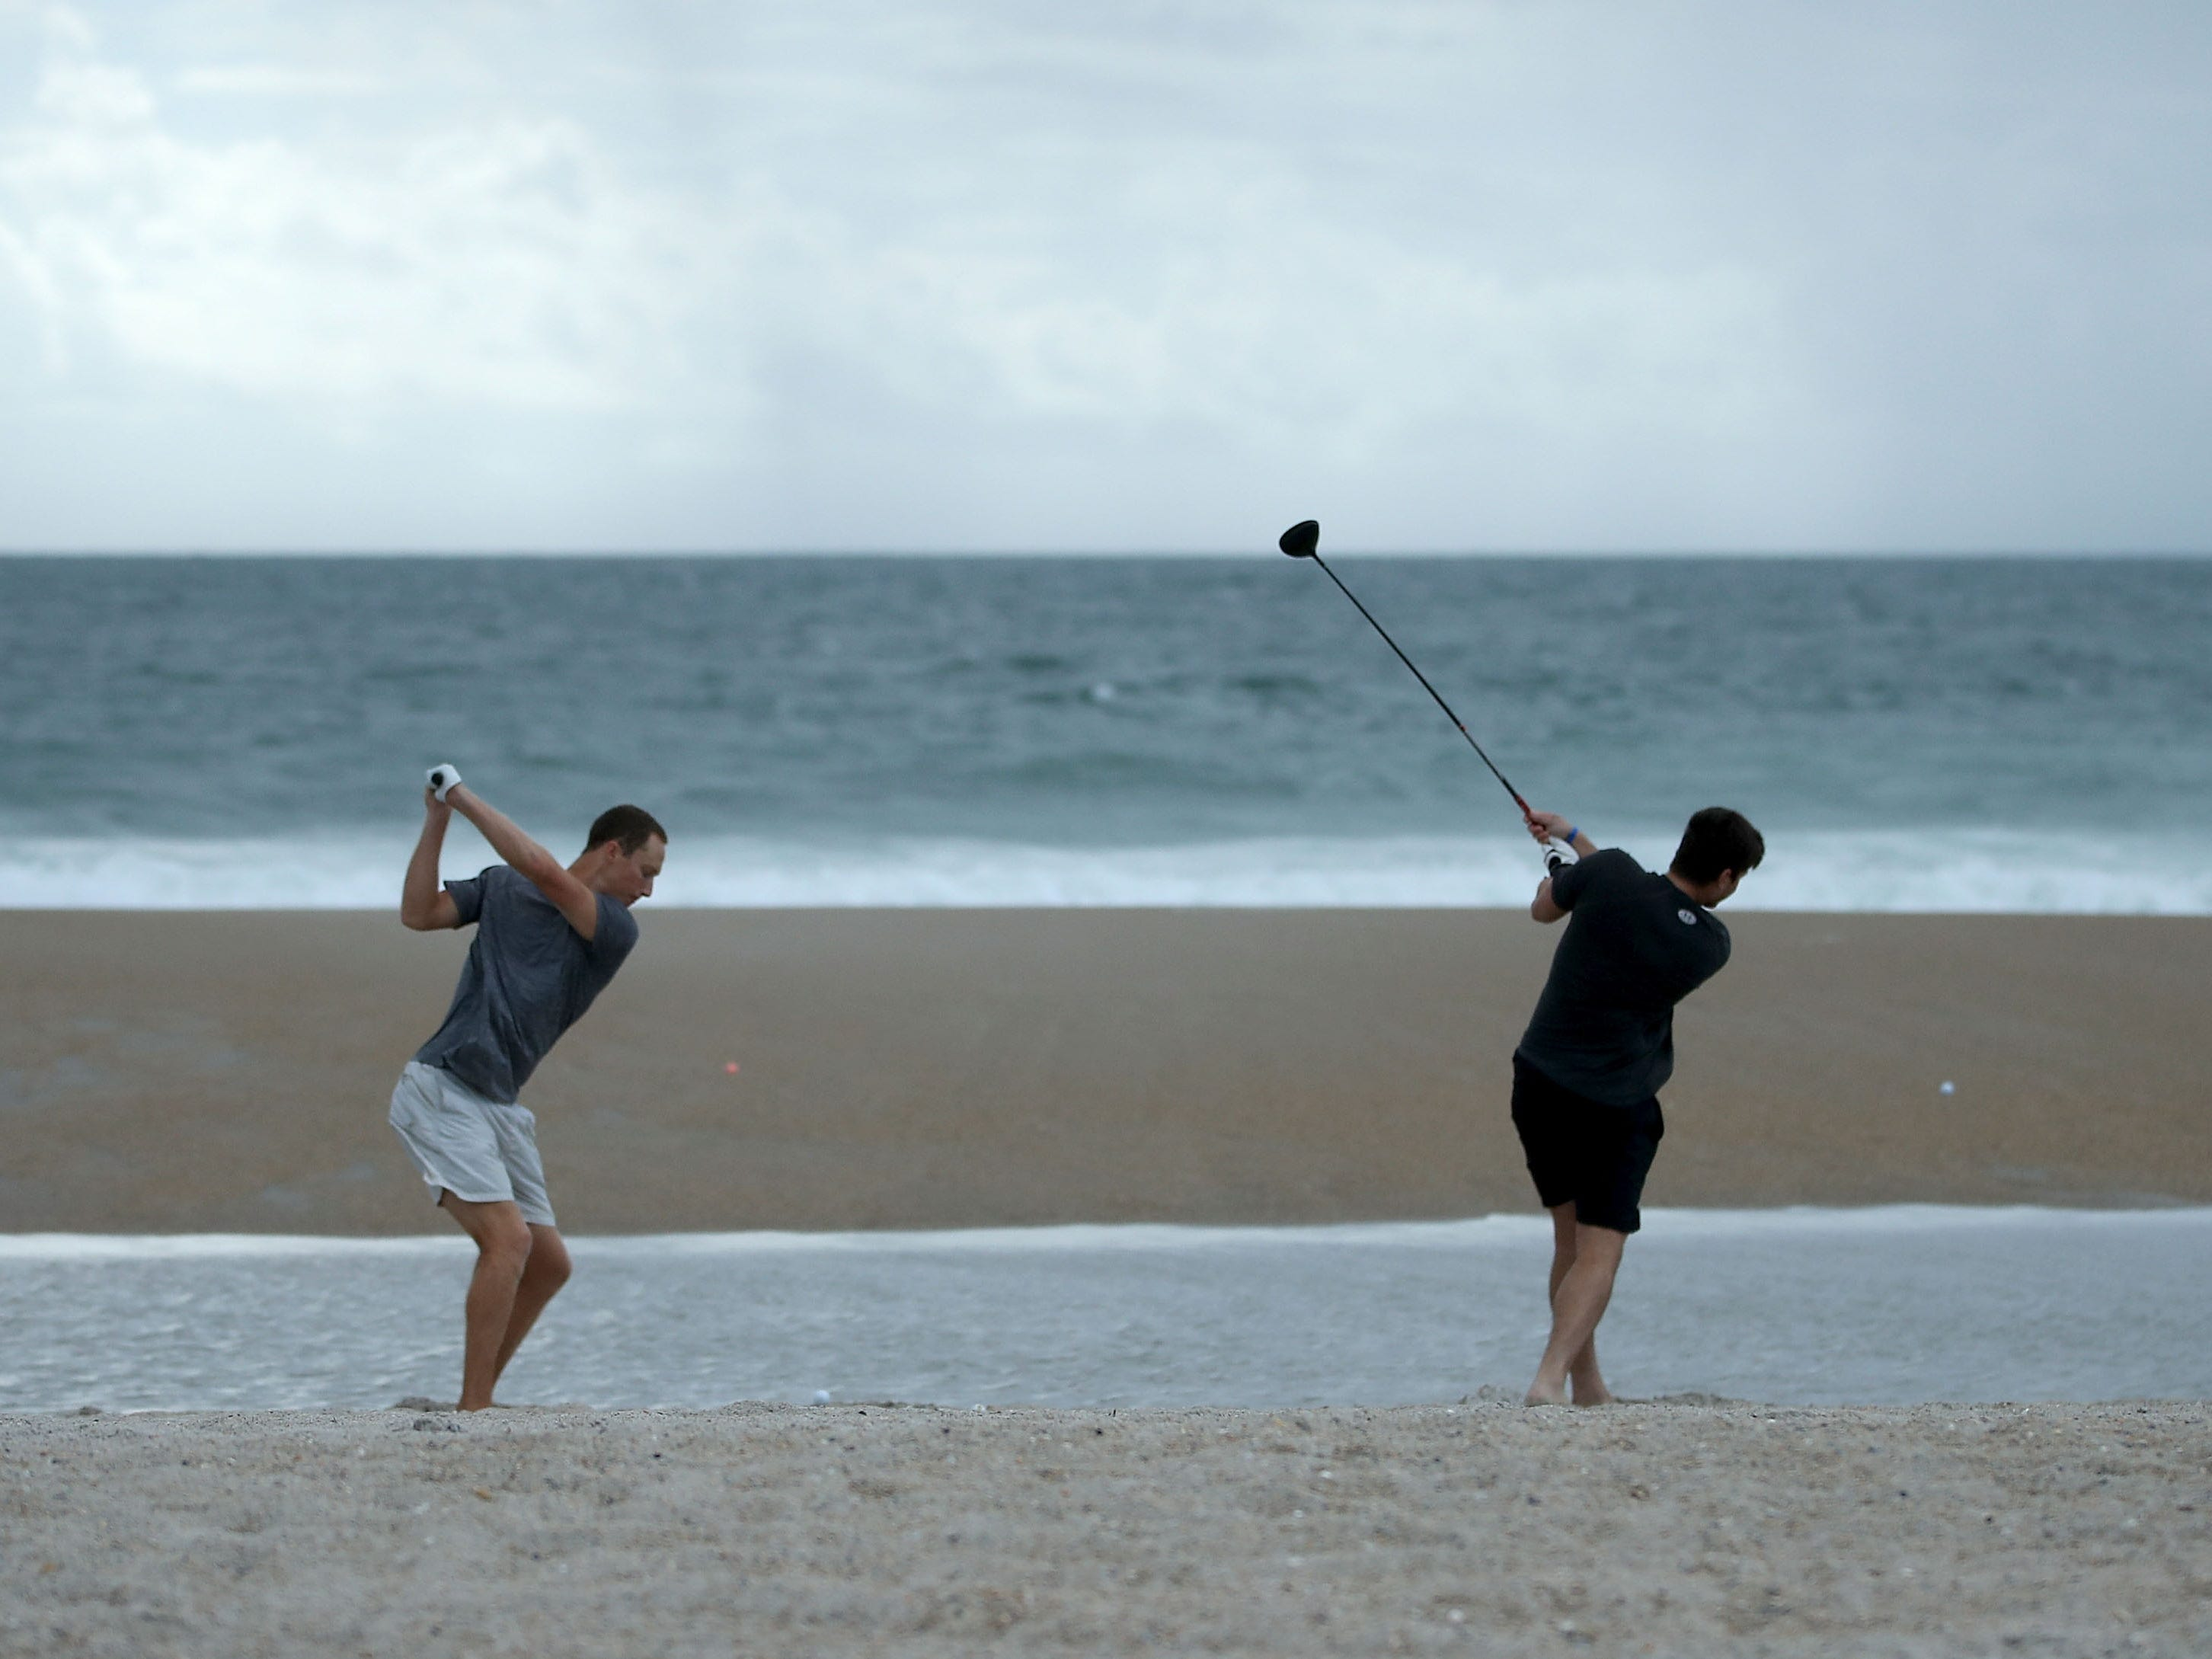 WRIGHTVILLE BEACH, NC- SEPTEMBER 11: Jacob Whitehead (L) and Matt Jones hit golf balls into the surf as Hurricane Florence approaches, on September 11, 2018 in Wrightsville Beach, United States. Hurricane Florence is expected on Friday possibly as a category 4 storm along the Virginia, North Carolina and South Carolina coastline.  (Photo by Mark Wilson/Getty Images) ORG XMIT: 775225768 ORIG FILE ID: 1031308814